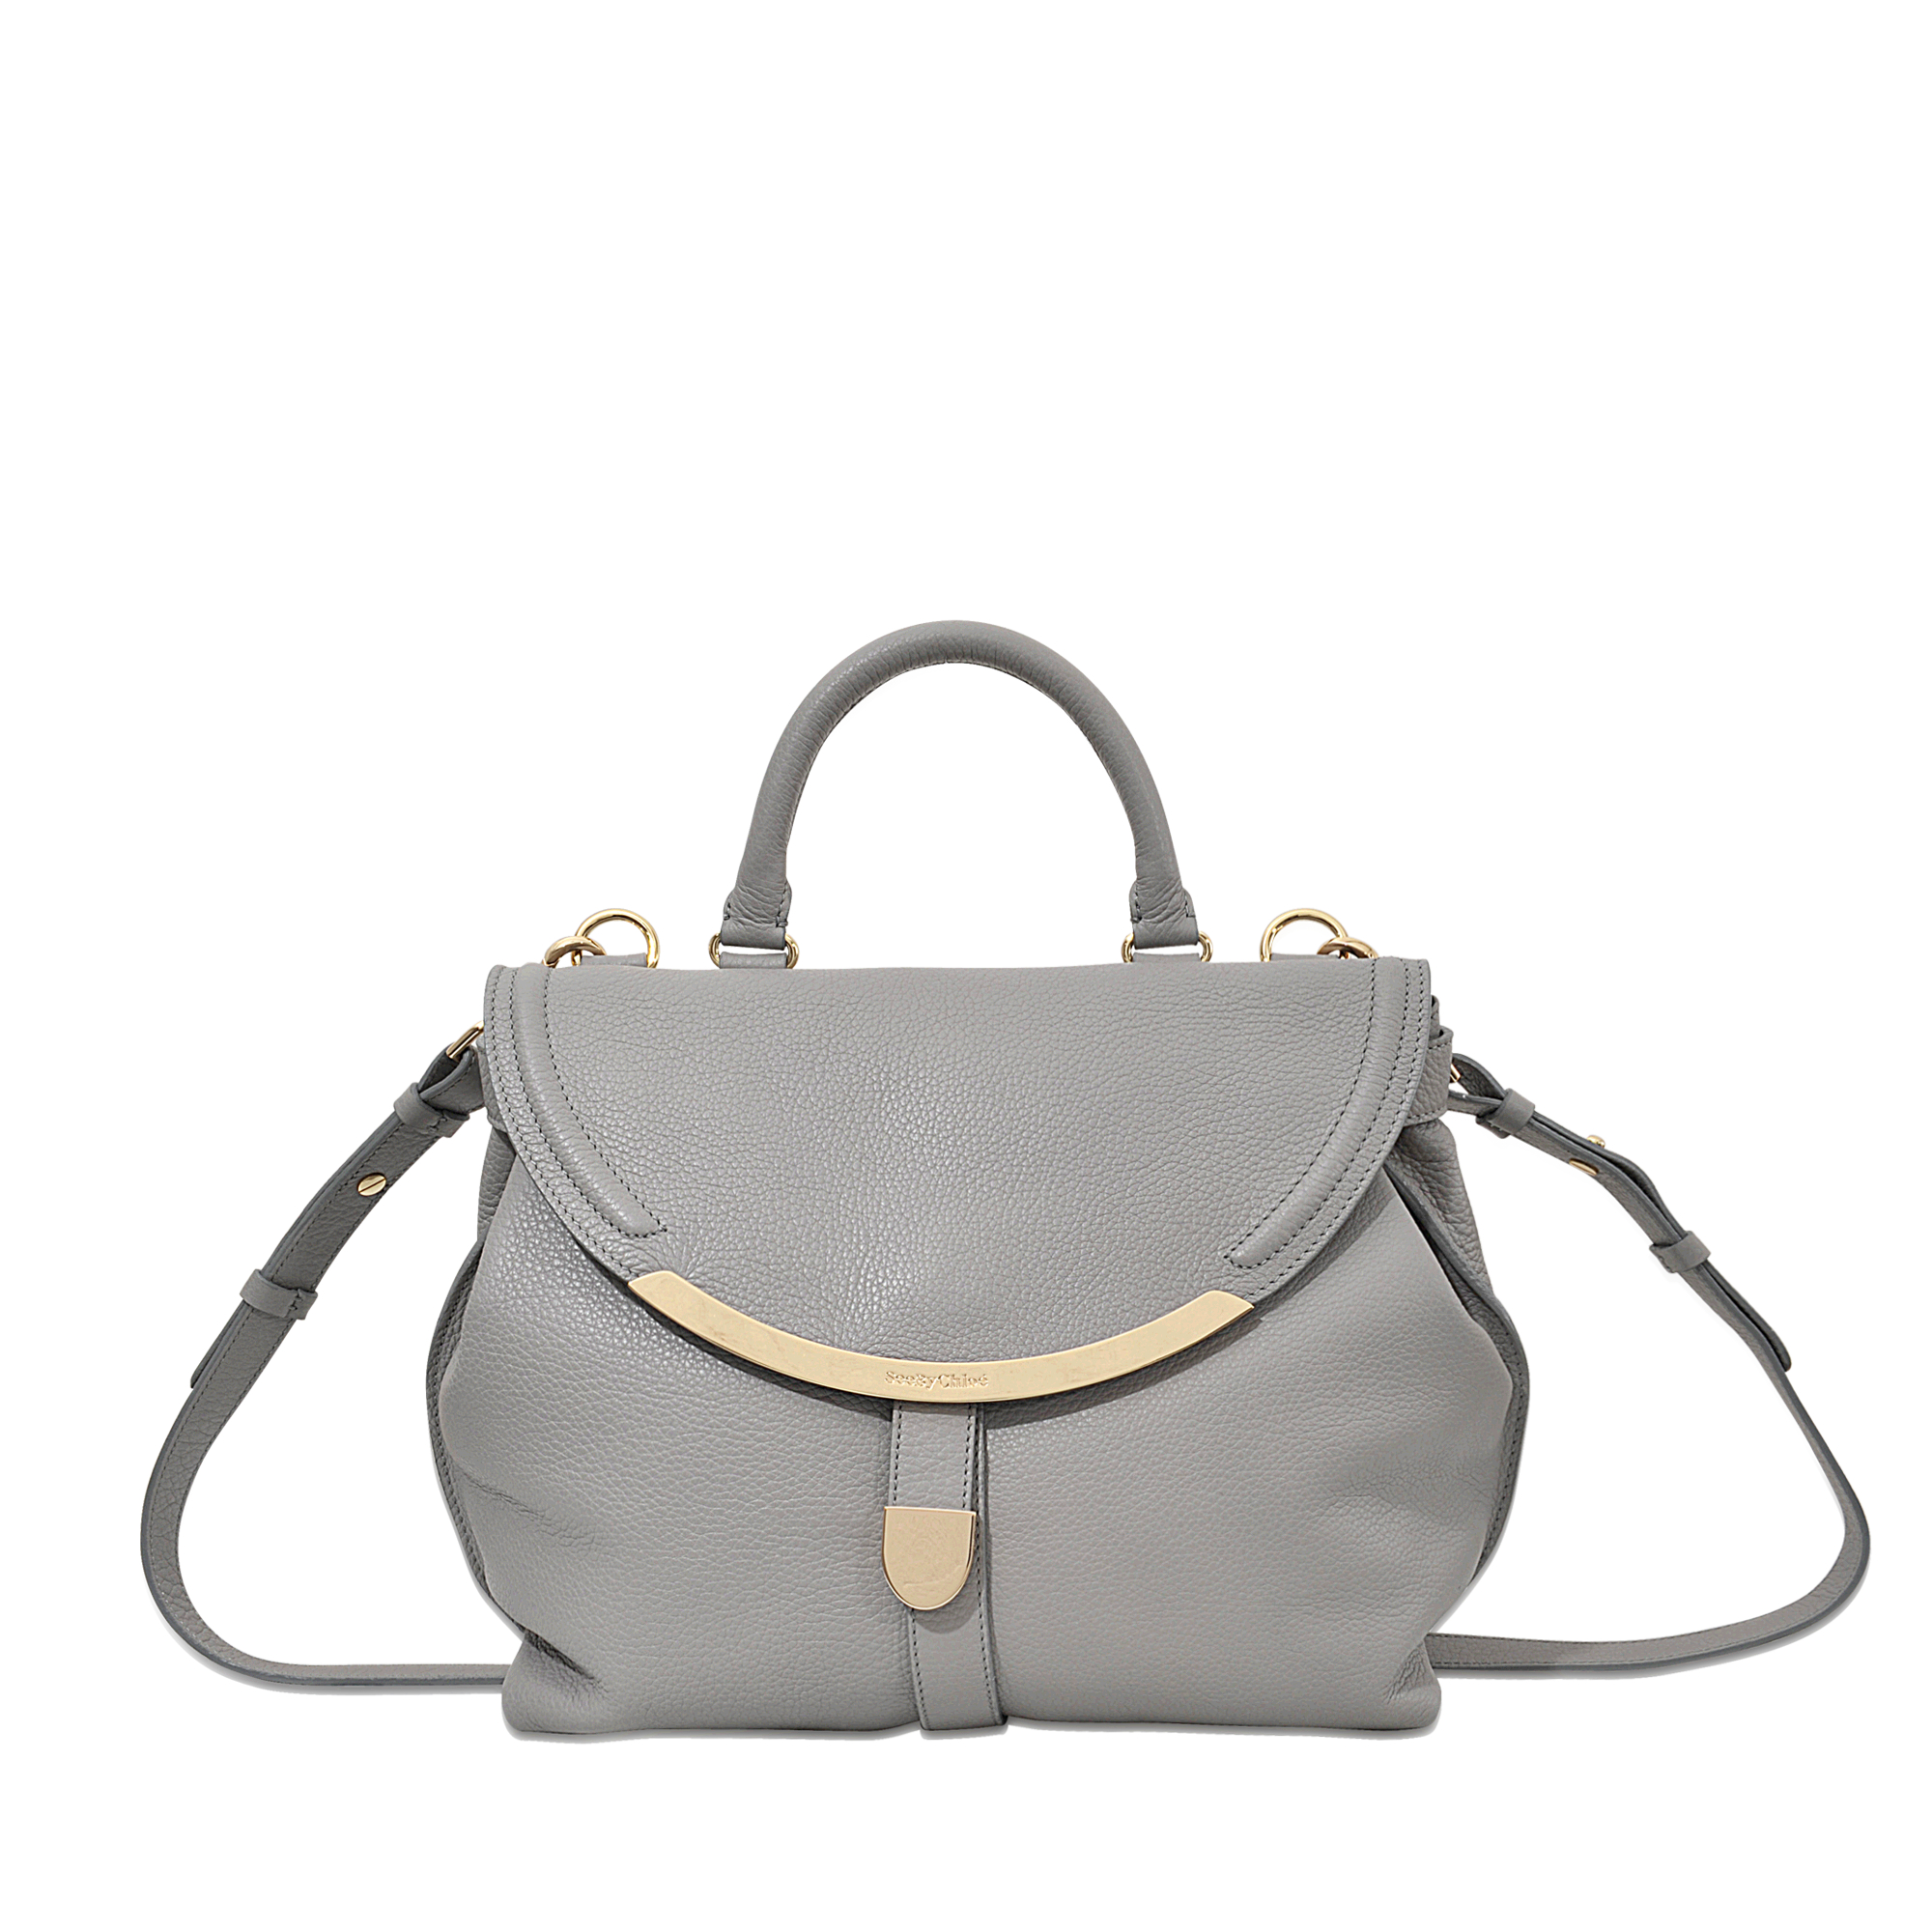 Lyst - See By Chloé Lizzie Satchel Bag in Gray 82c13e567c8